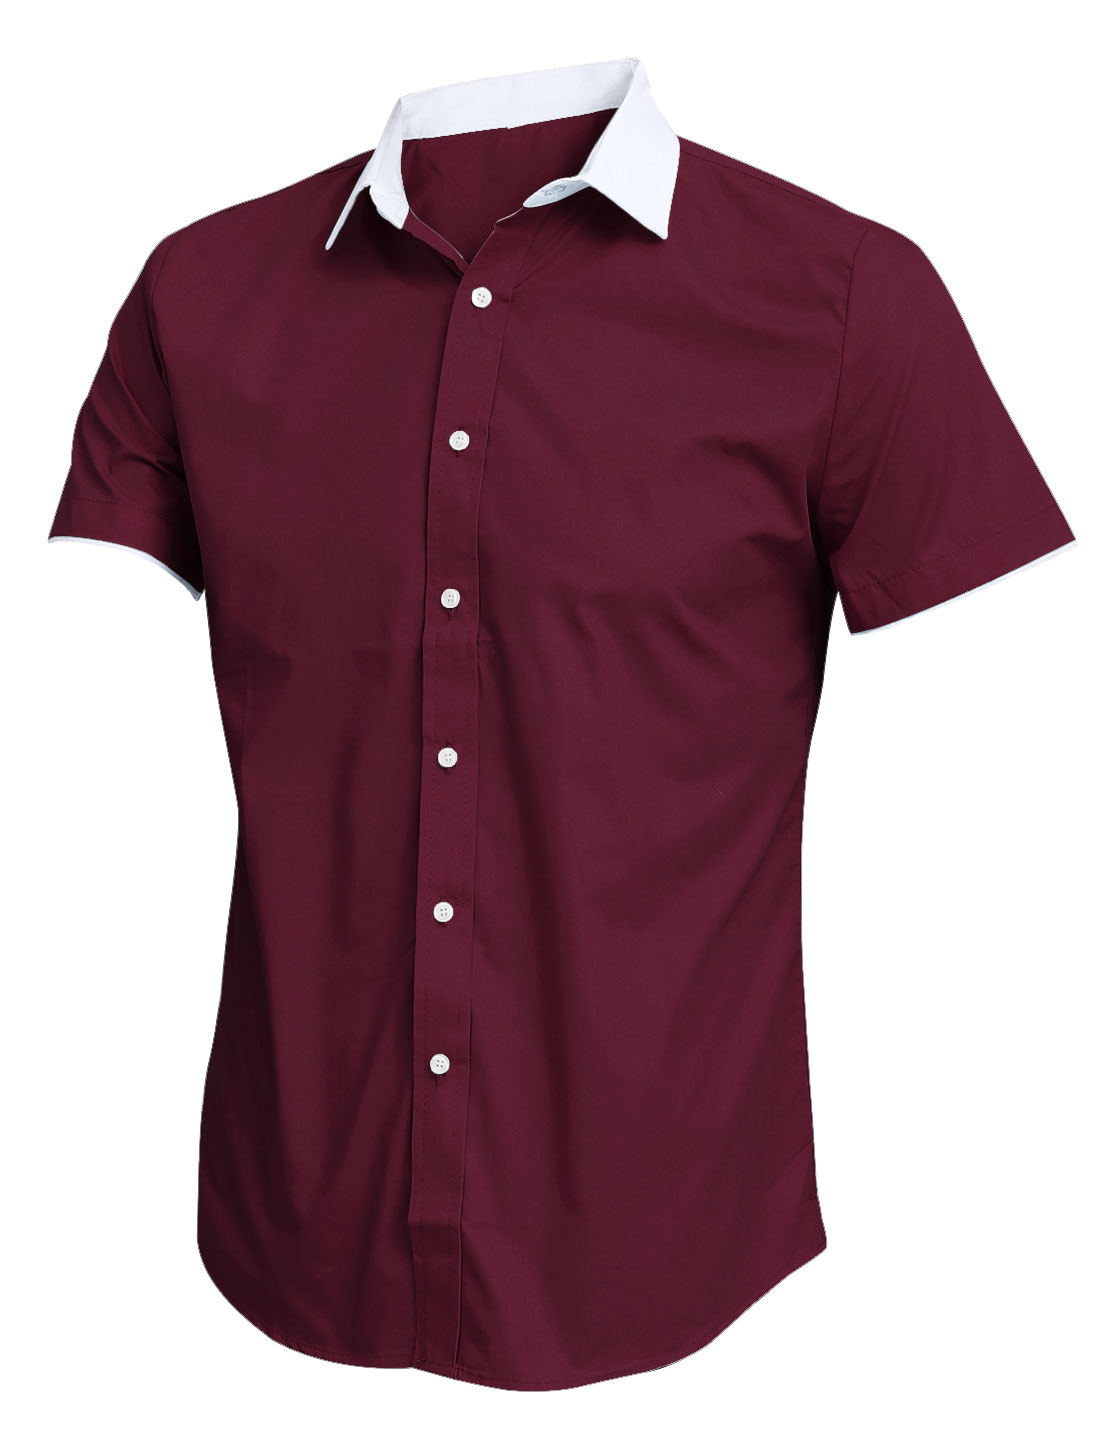 Men Stylish Casual Style Slim Fit Button Up Burgundy Shirt M